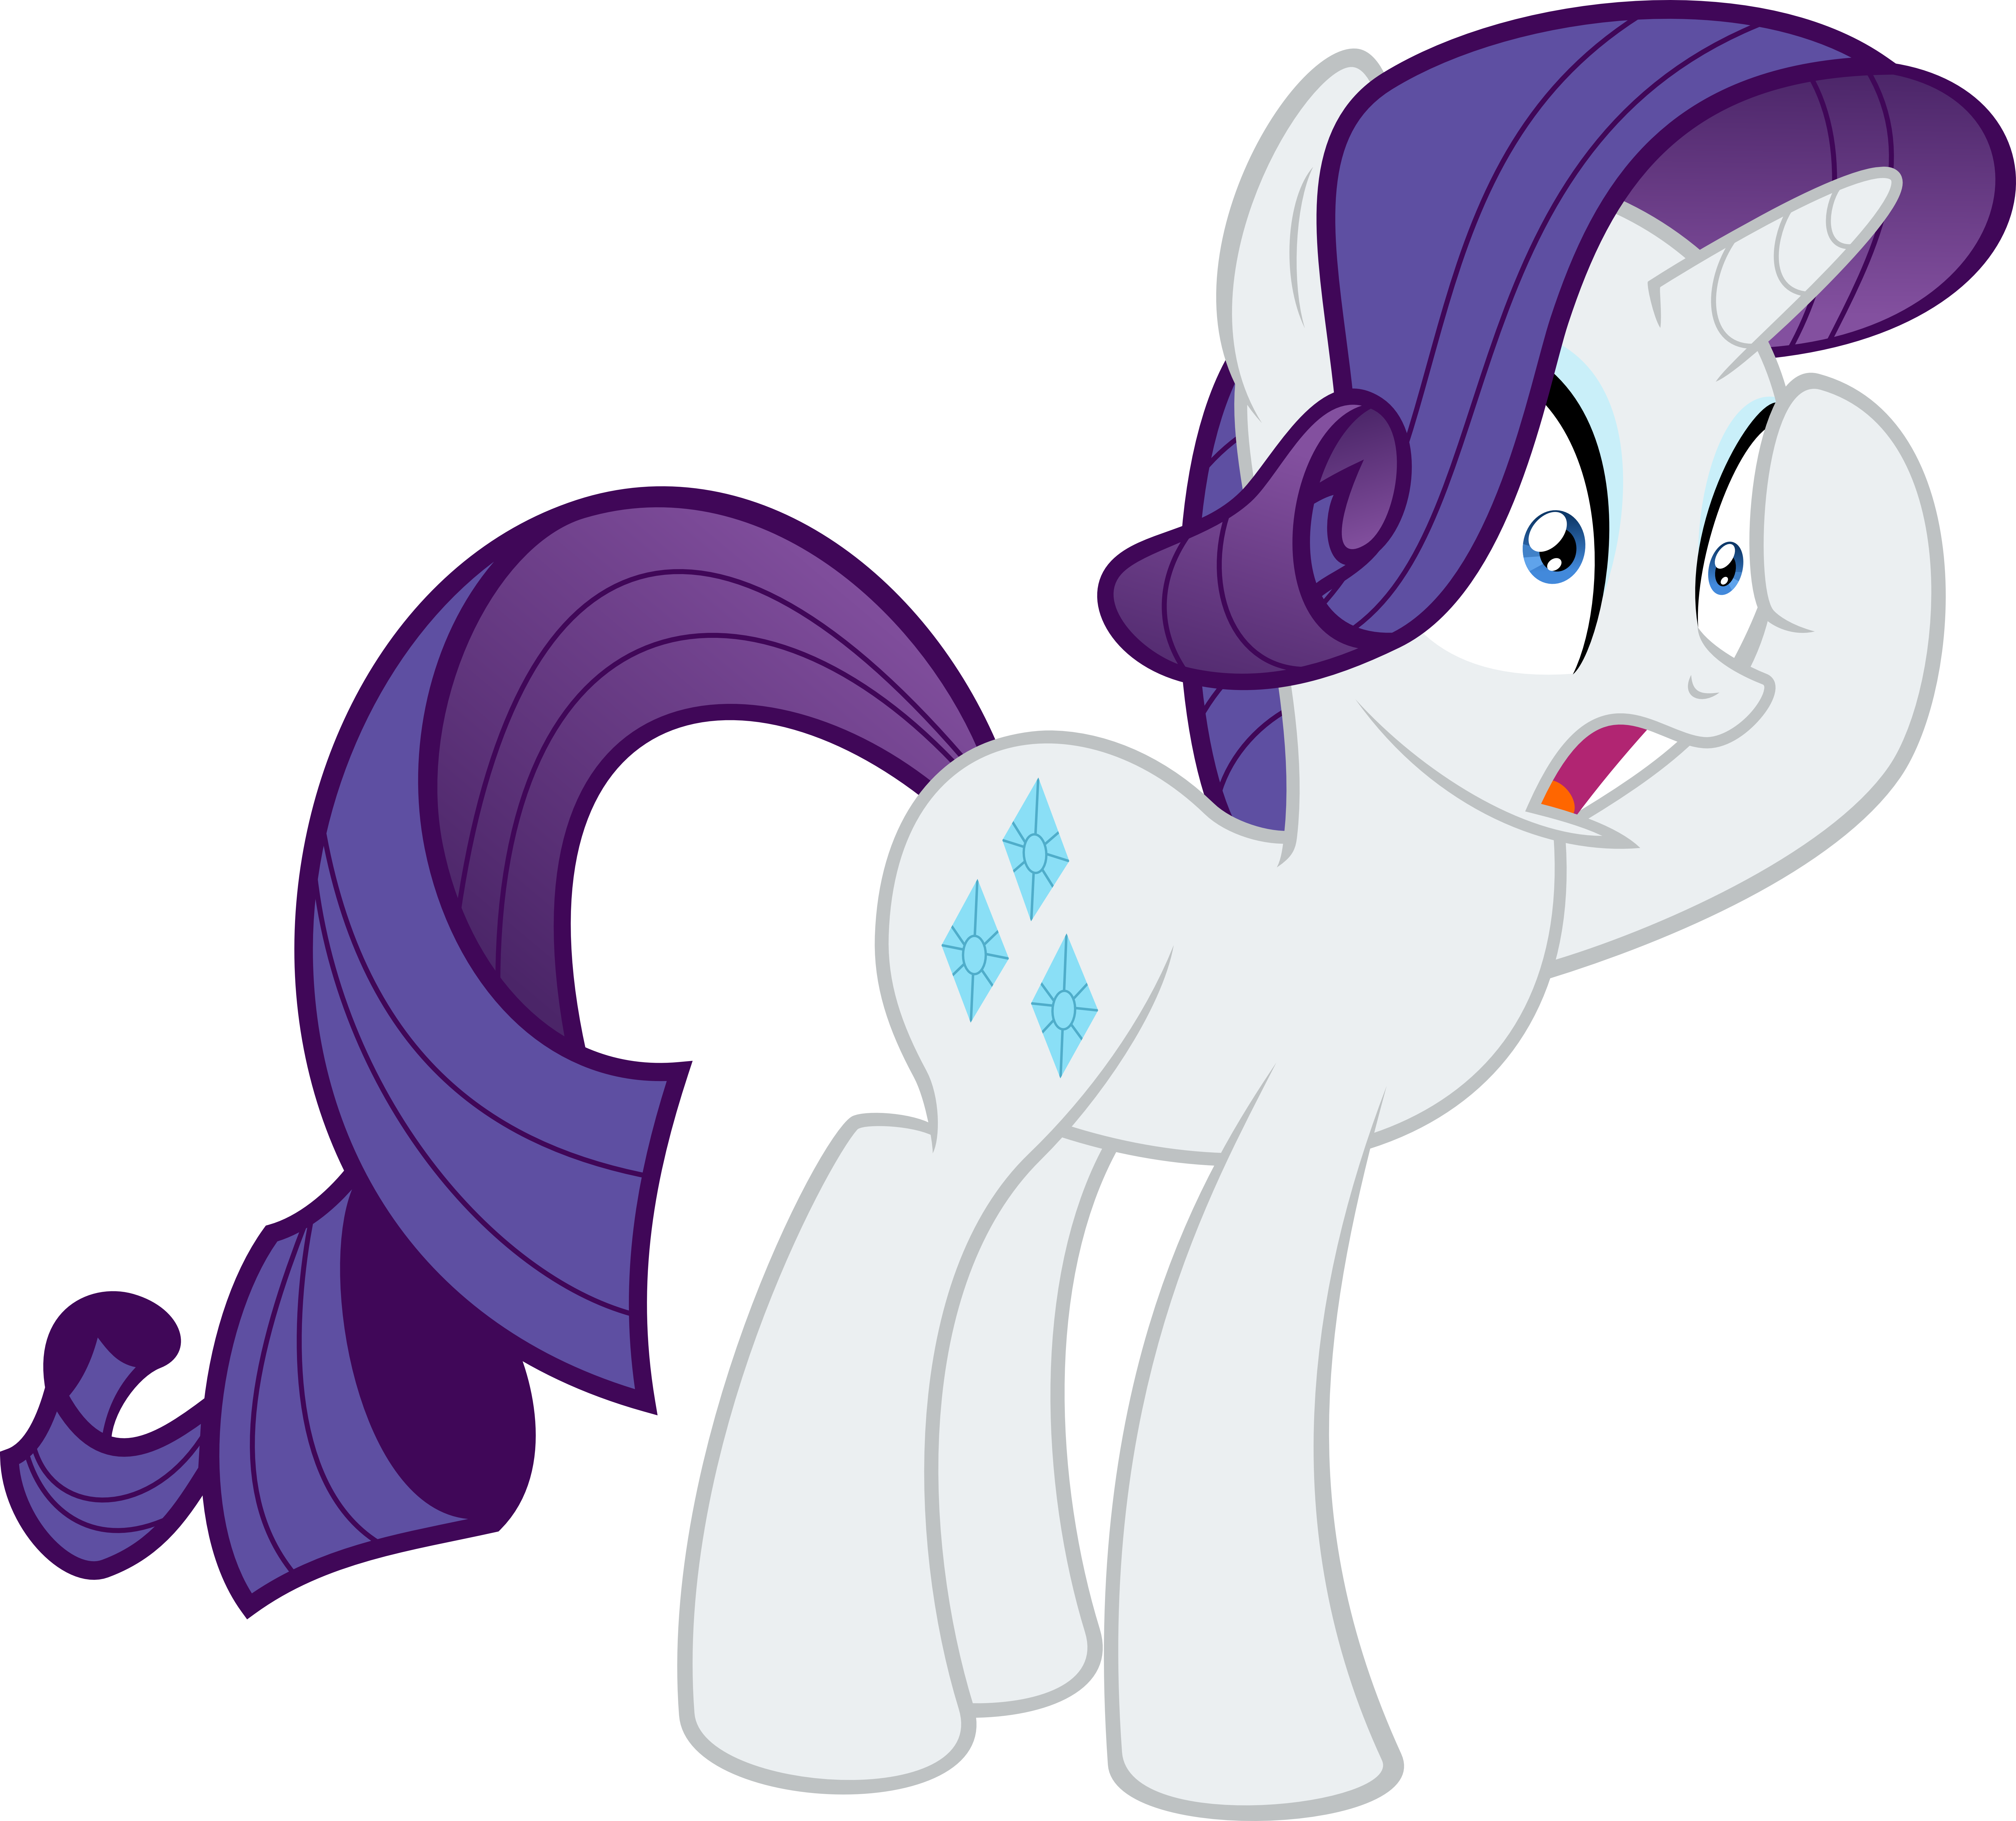 shocked_rarity_by_psyxofthoros-d5kyxnc.p